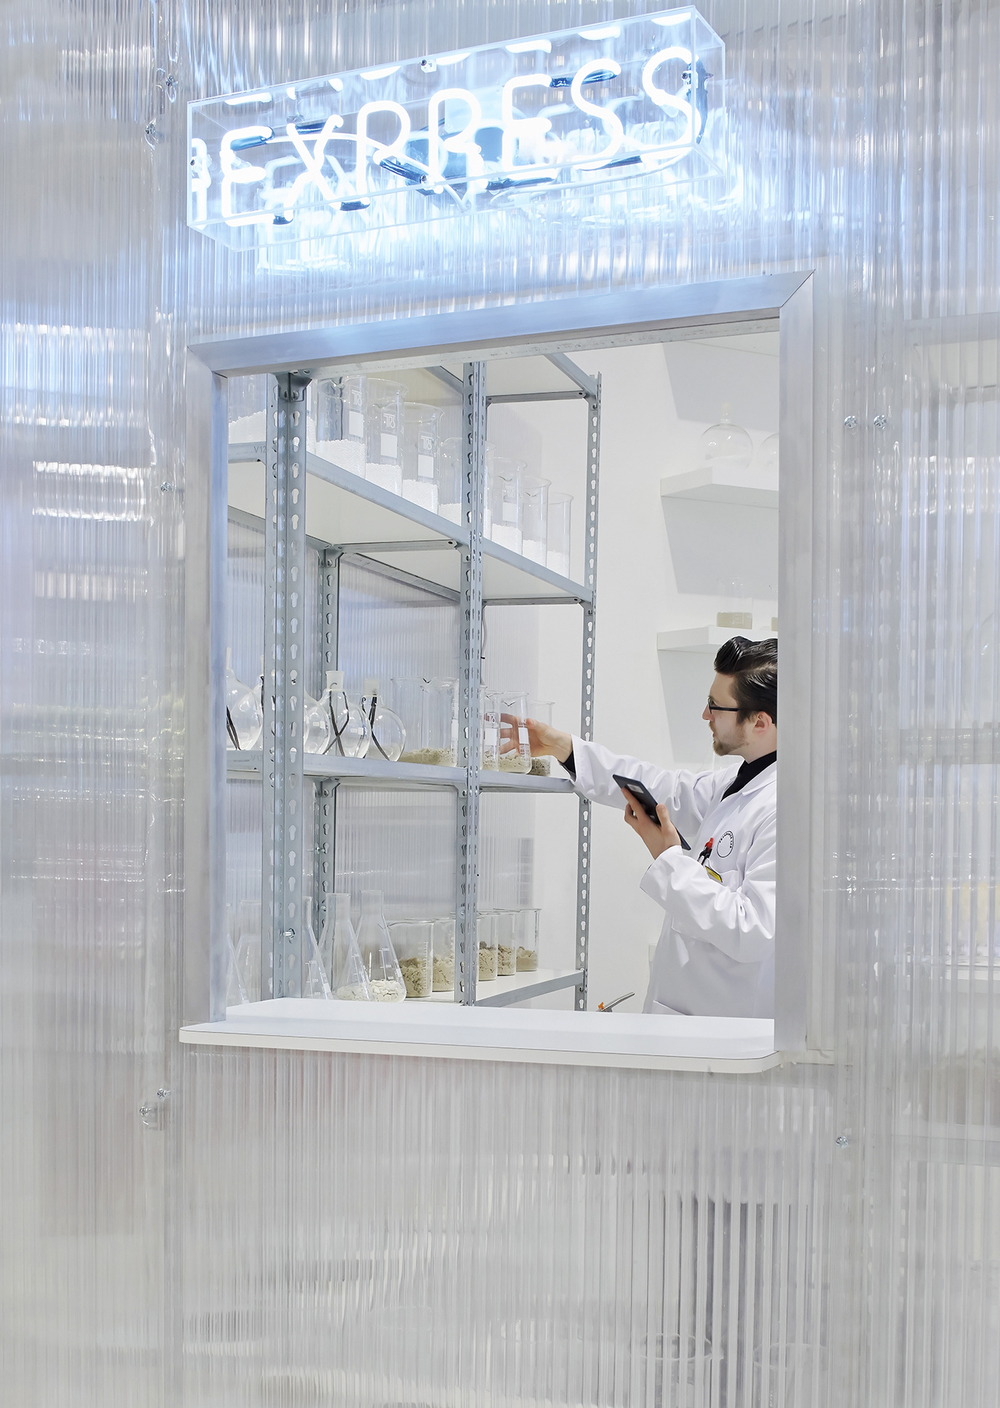 Fragrance Lab at Selfridges designed by Future Laboratory